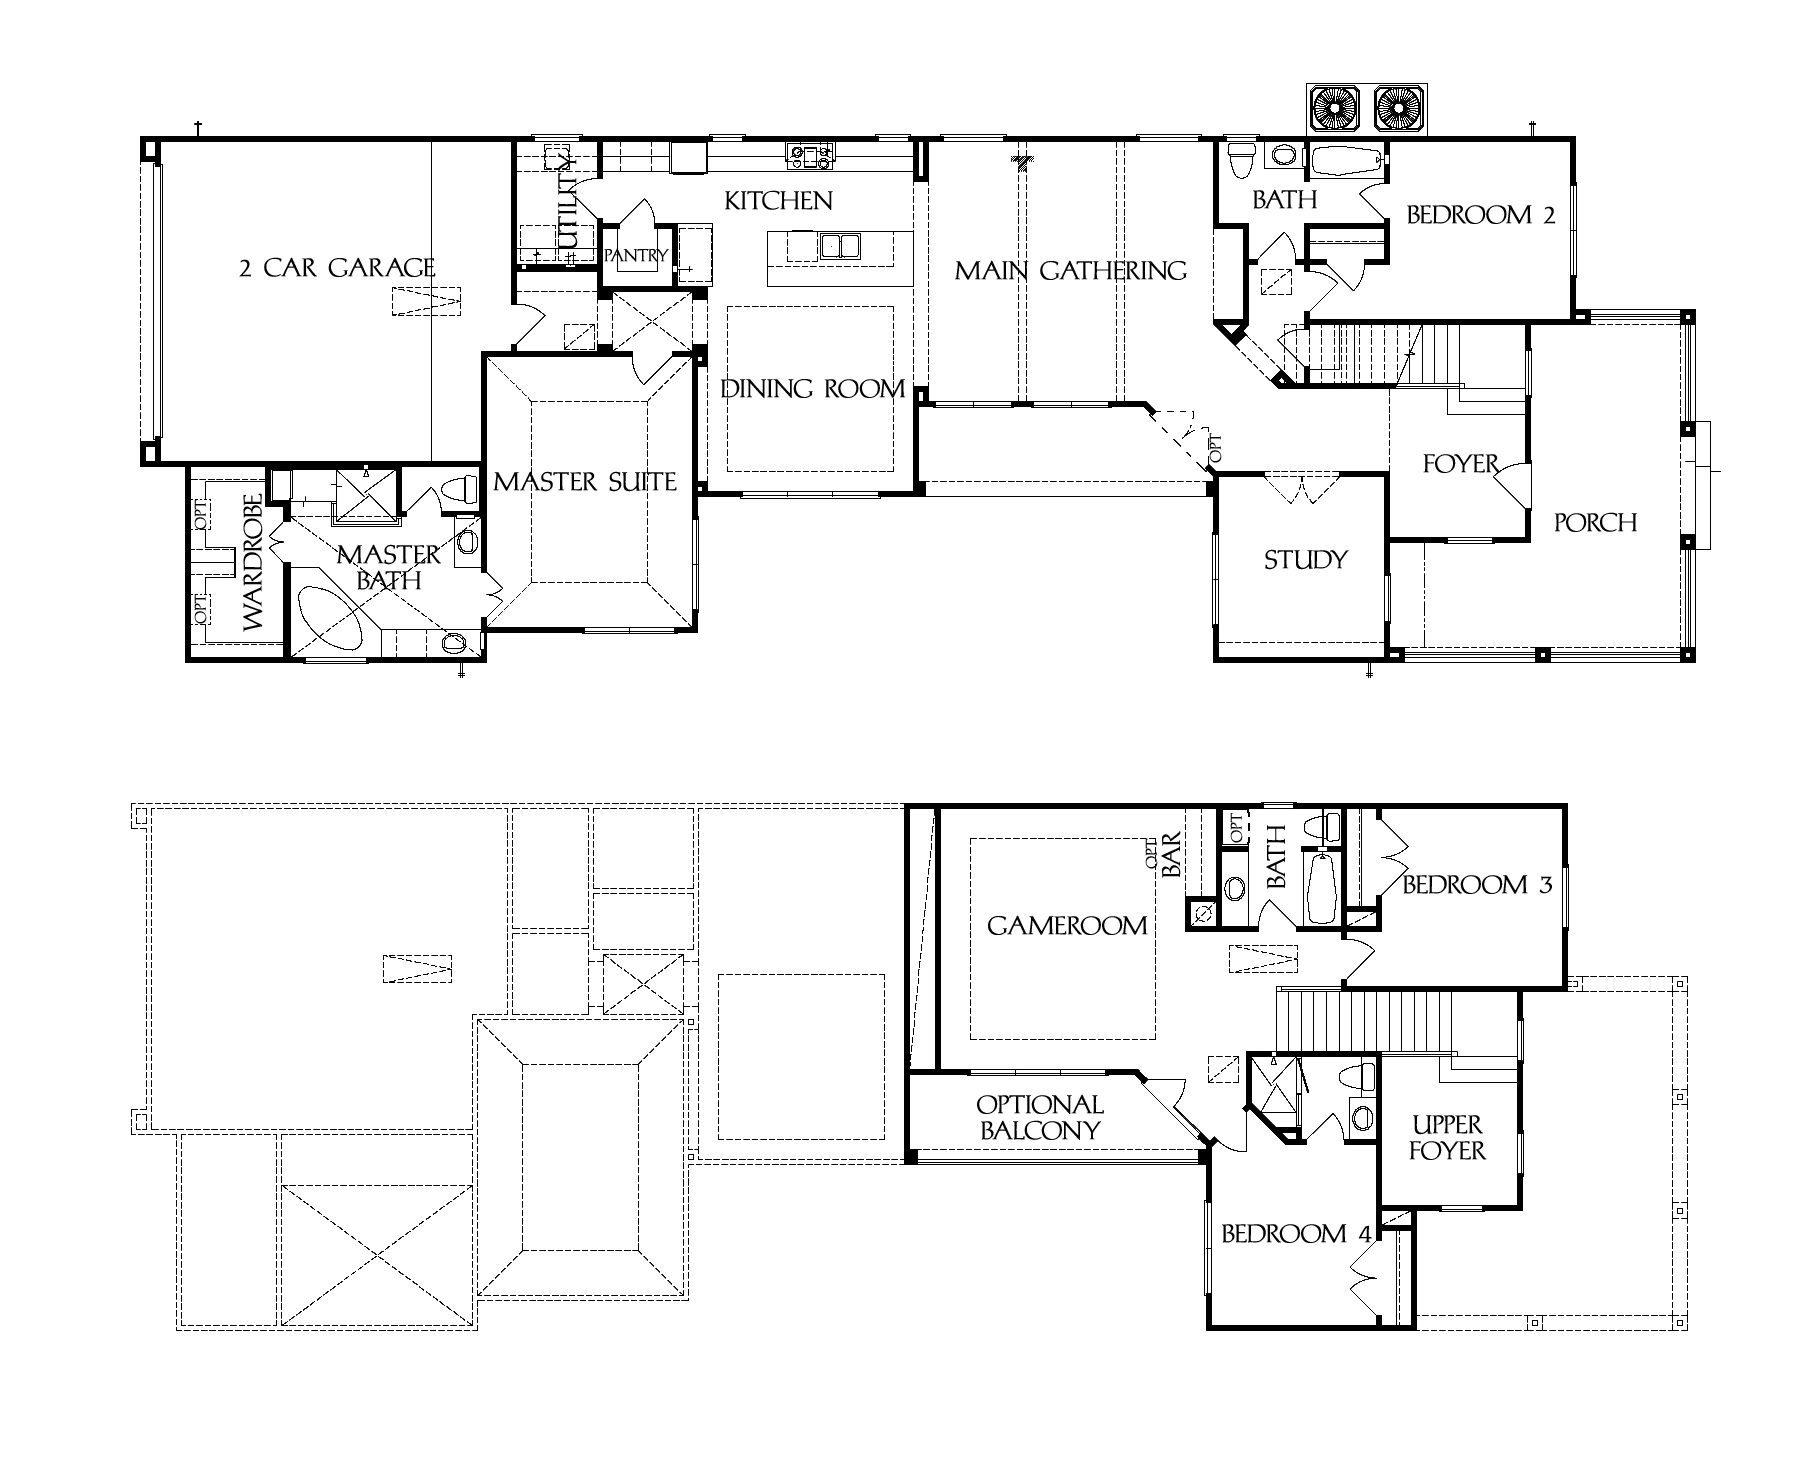 3000 sq ft house plans joy studio design gallery best for Floor plans for 3000 sq ft homes